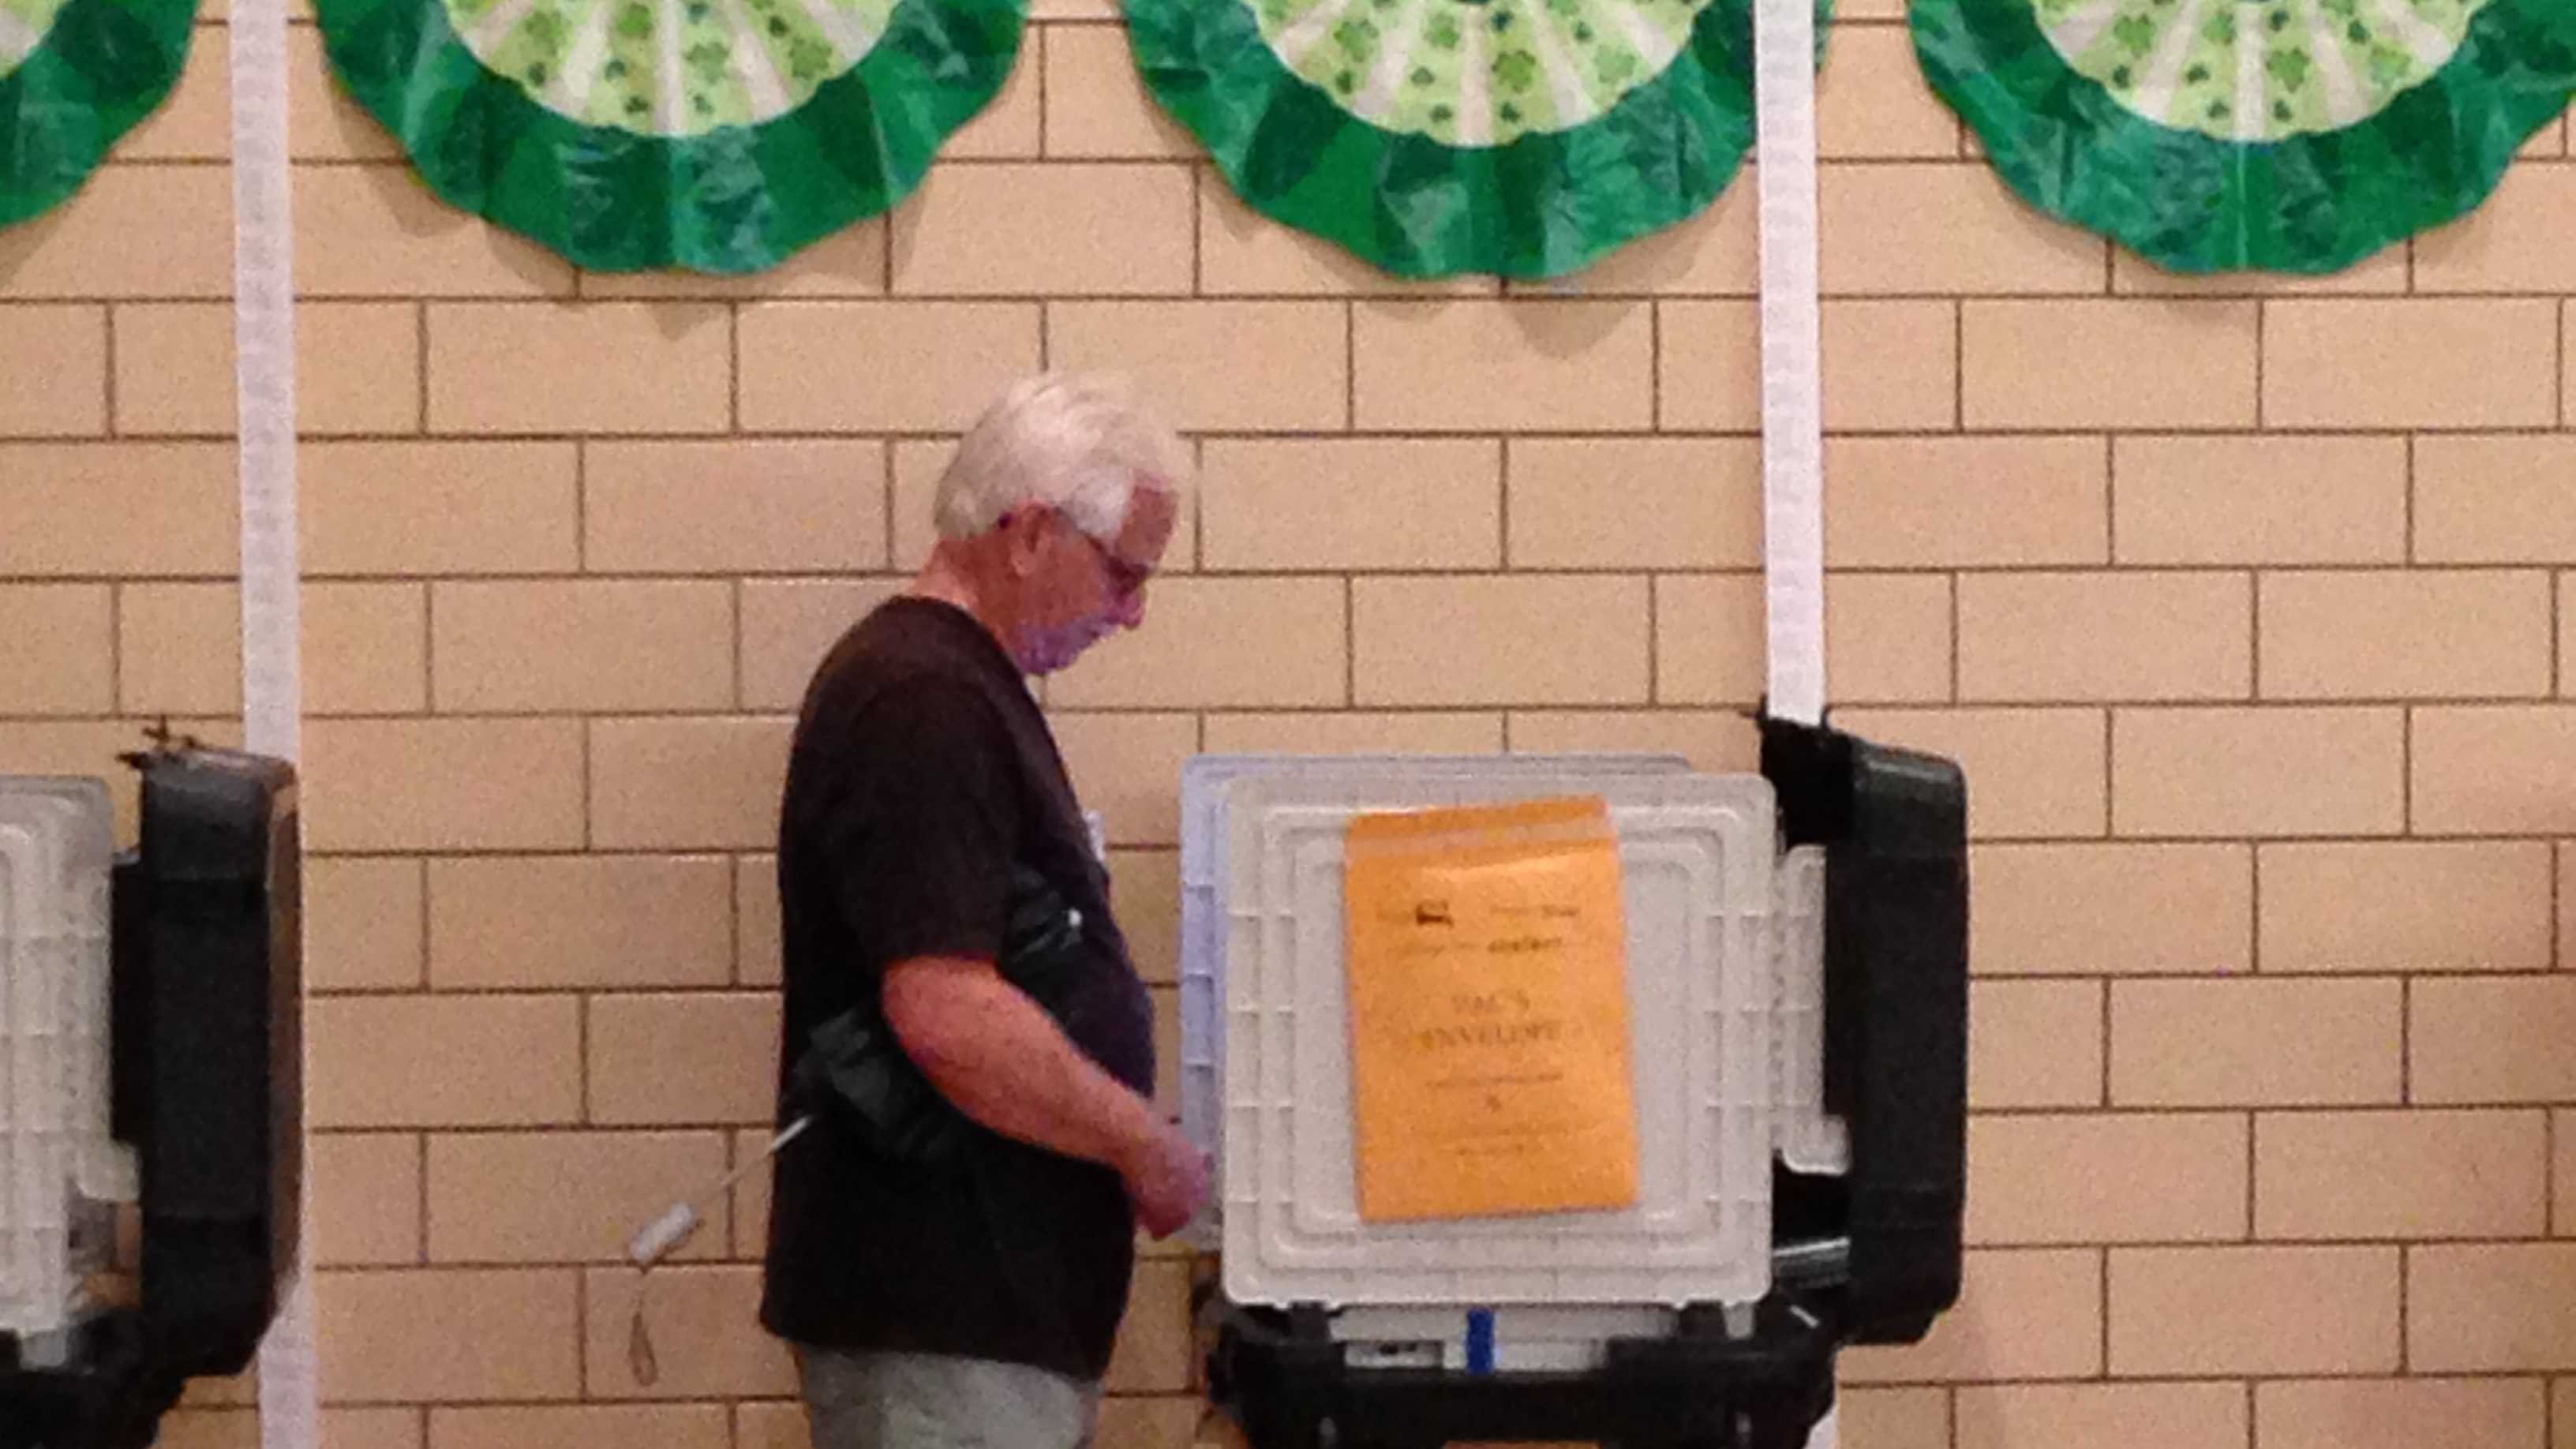 Several voters lined up to cast their ballots early Thursday.